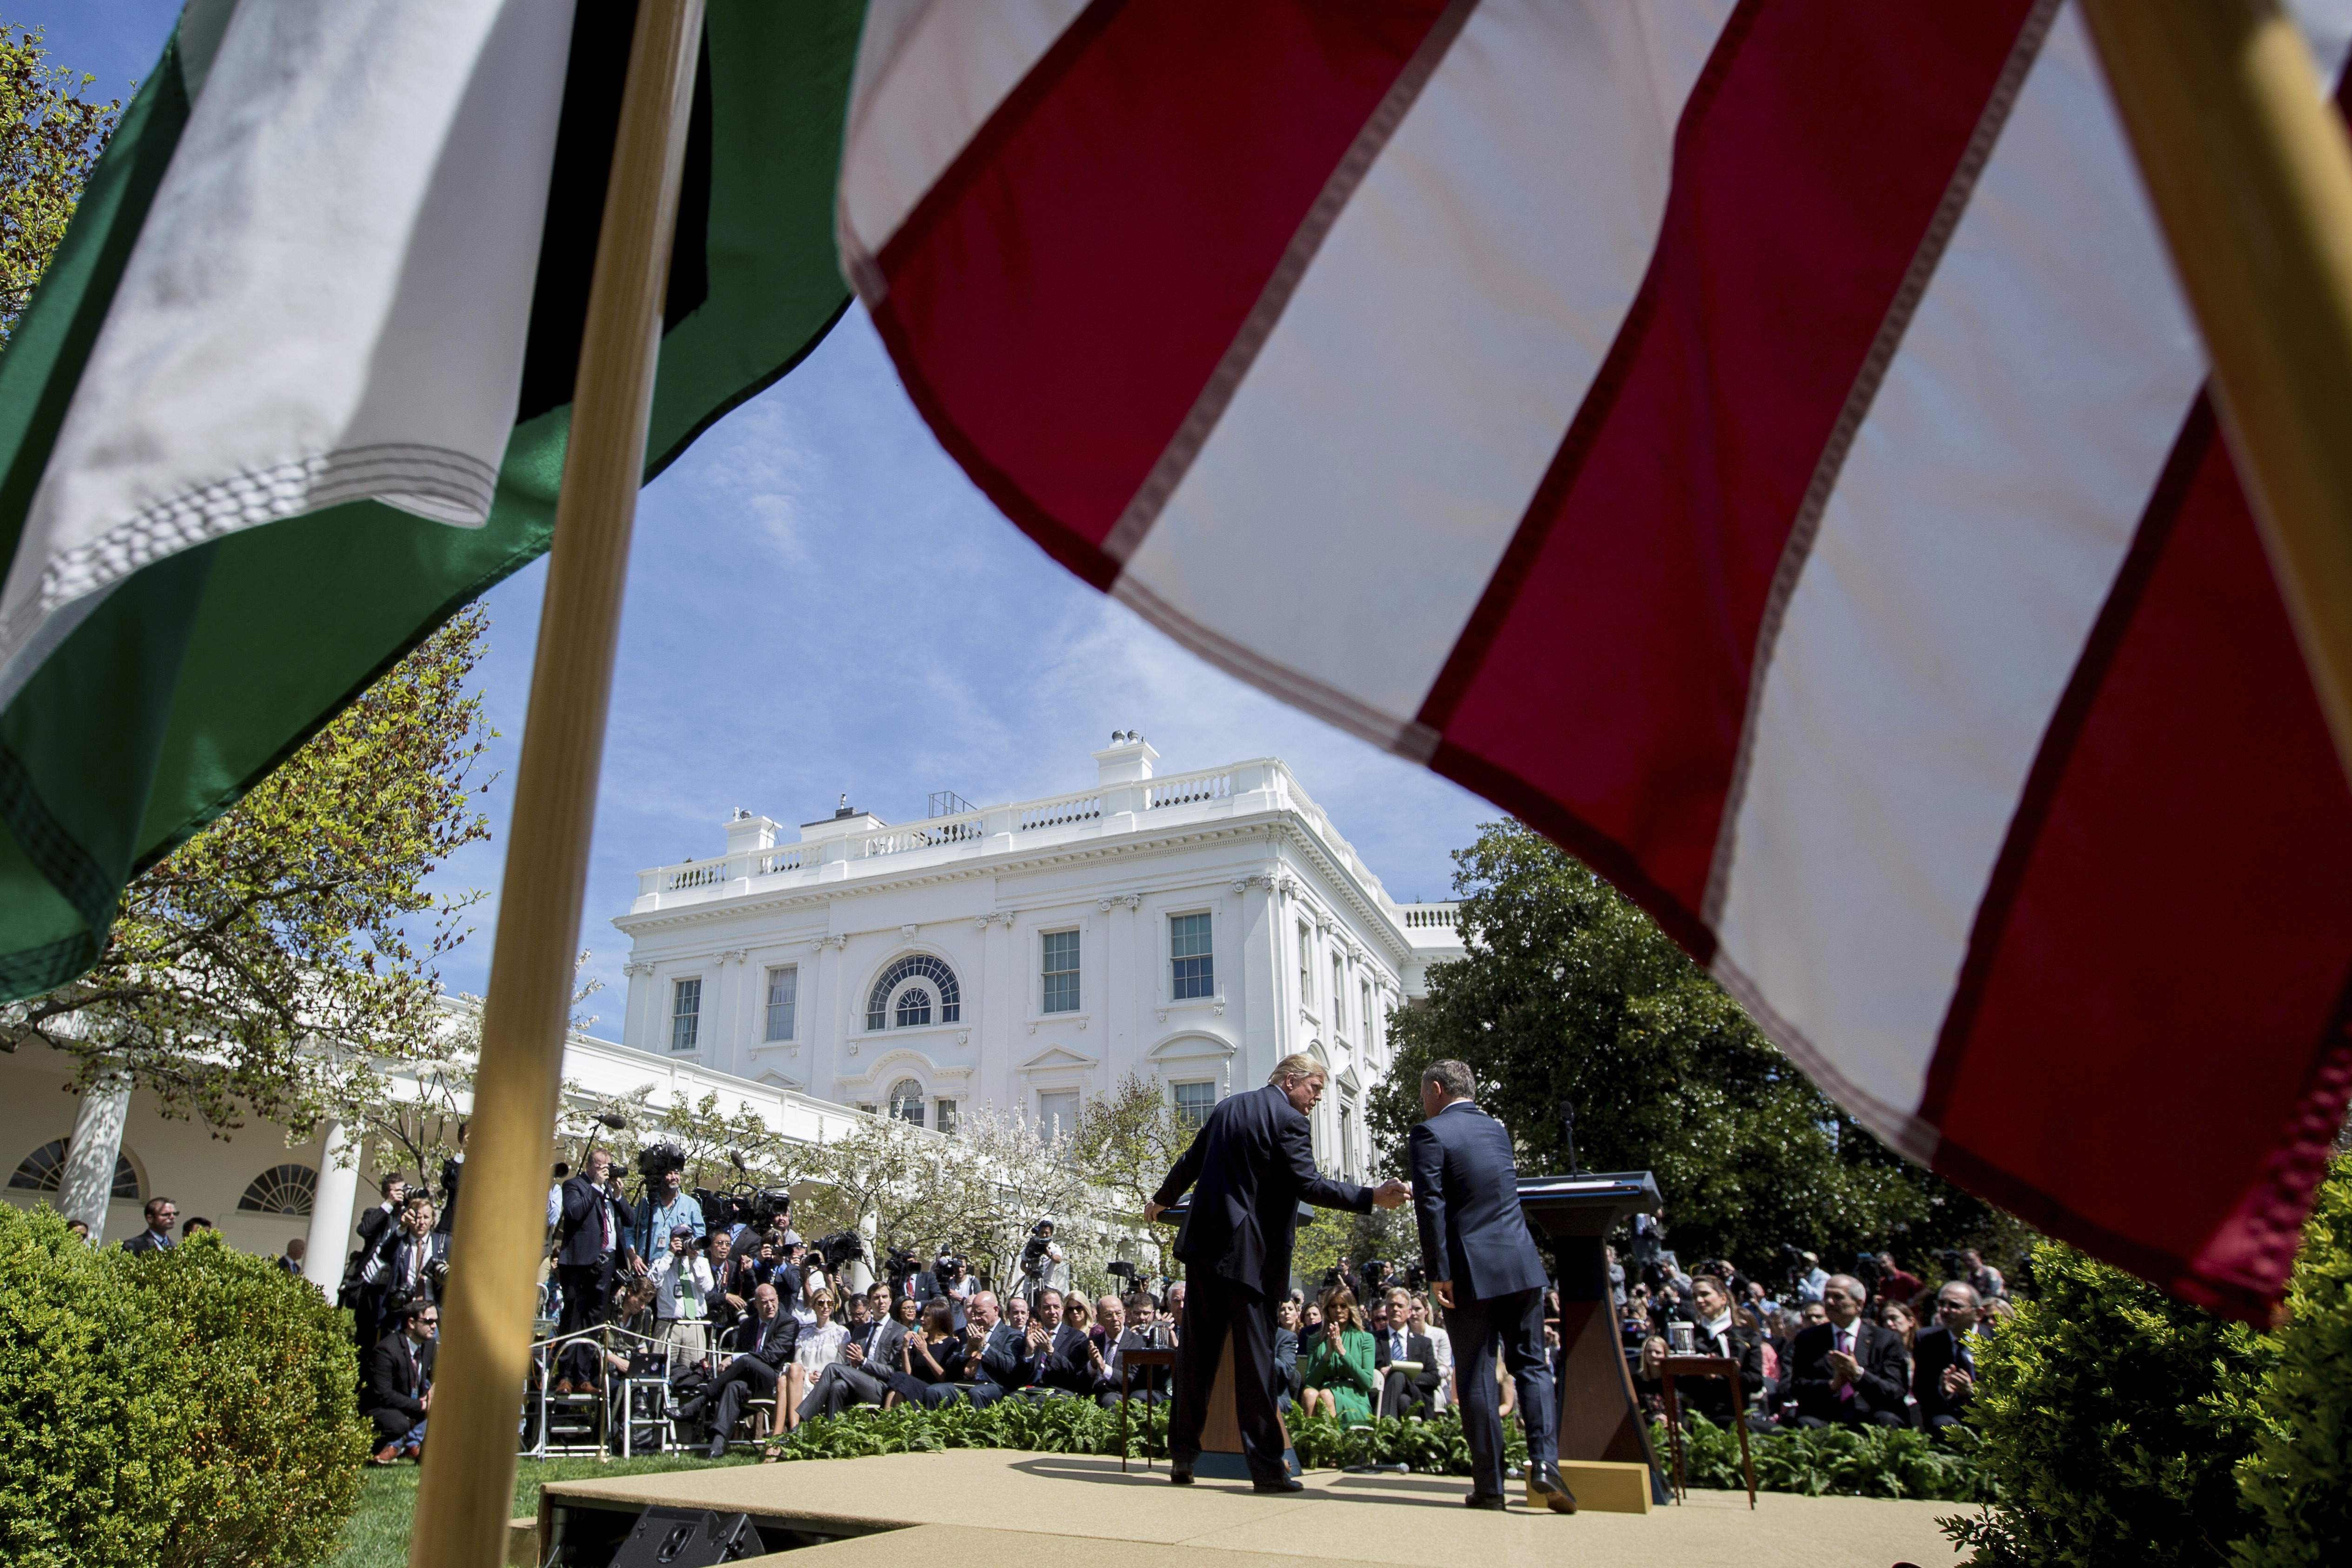 DAY 76 - in this April 5, 2017, file photo, President Donald Trump and Jordan's King Abdullah II shake hands during their news conference in the Rose Garden of the White House in Washington. (AP Photo/Andrew Harnik, File)